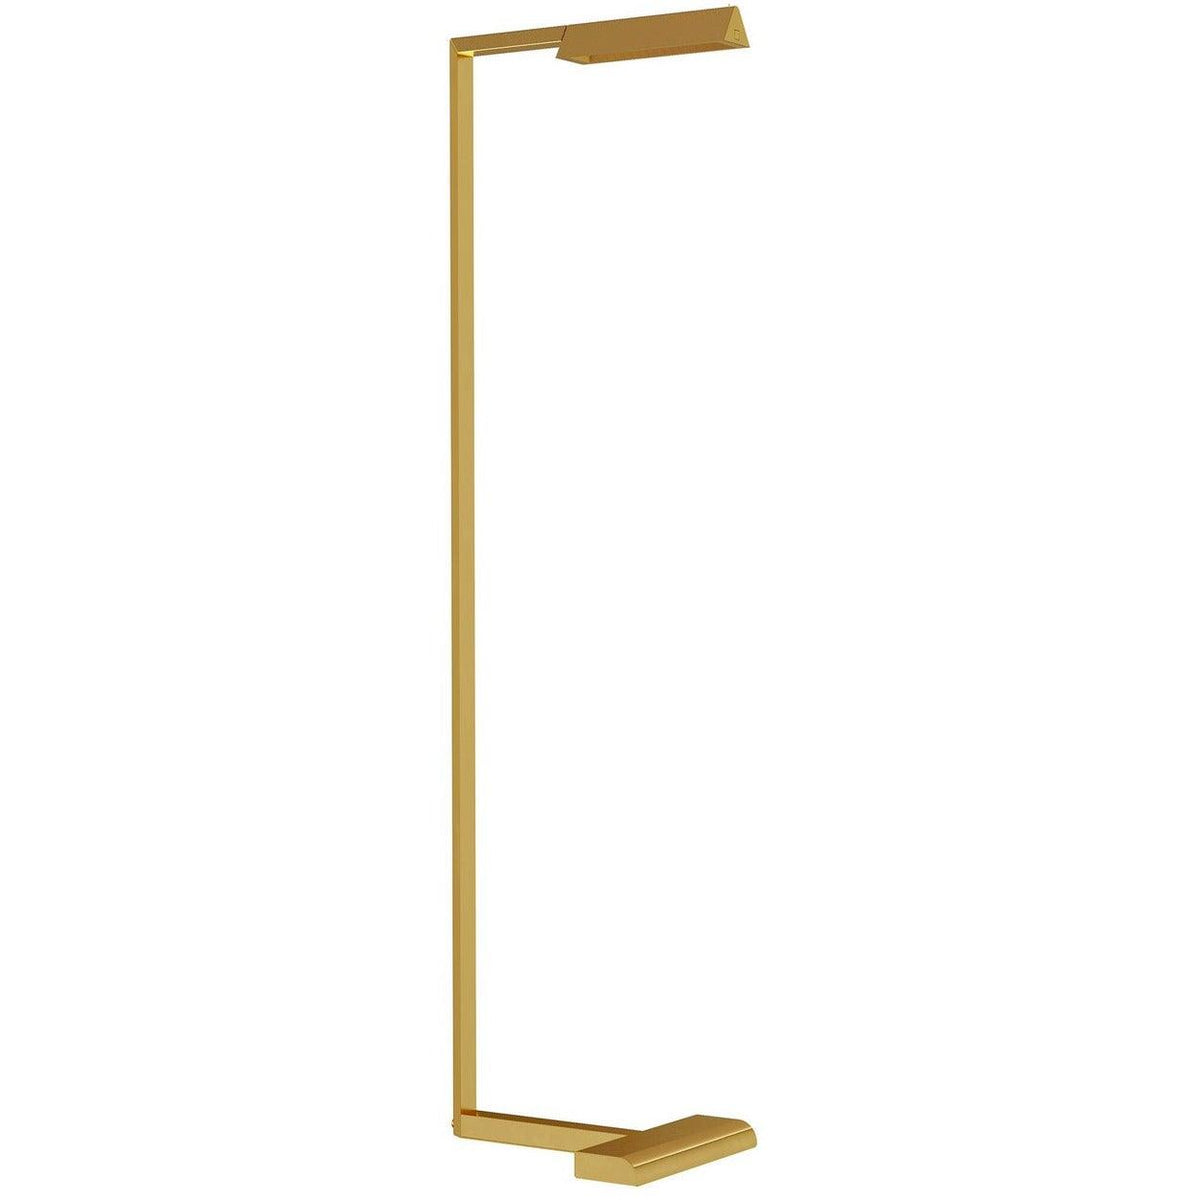 Tech Lighting - 700PRTDES46NB-LED927 - LED Floor Lamp - Dessau - Natural Brass